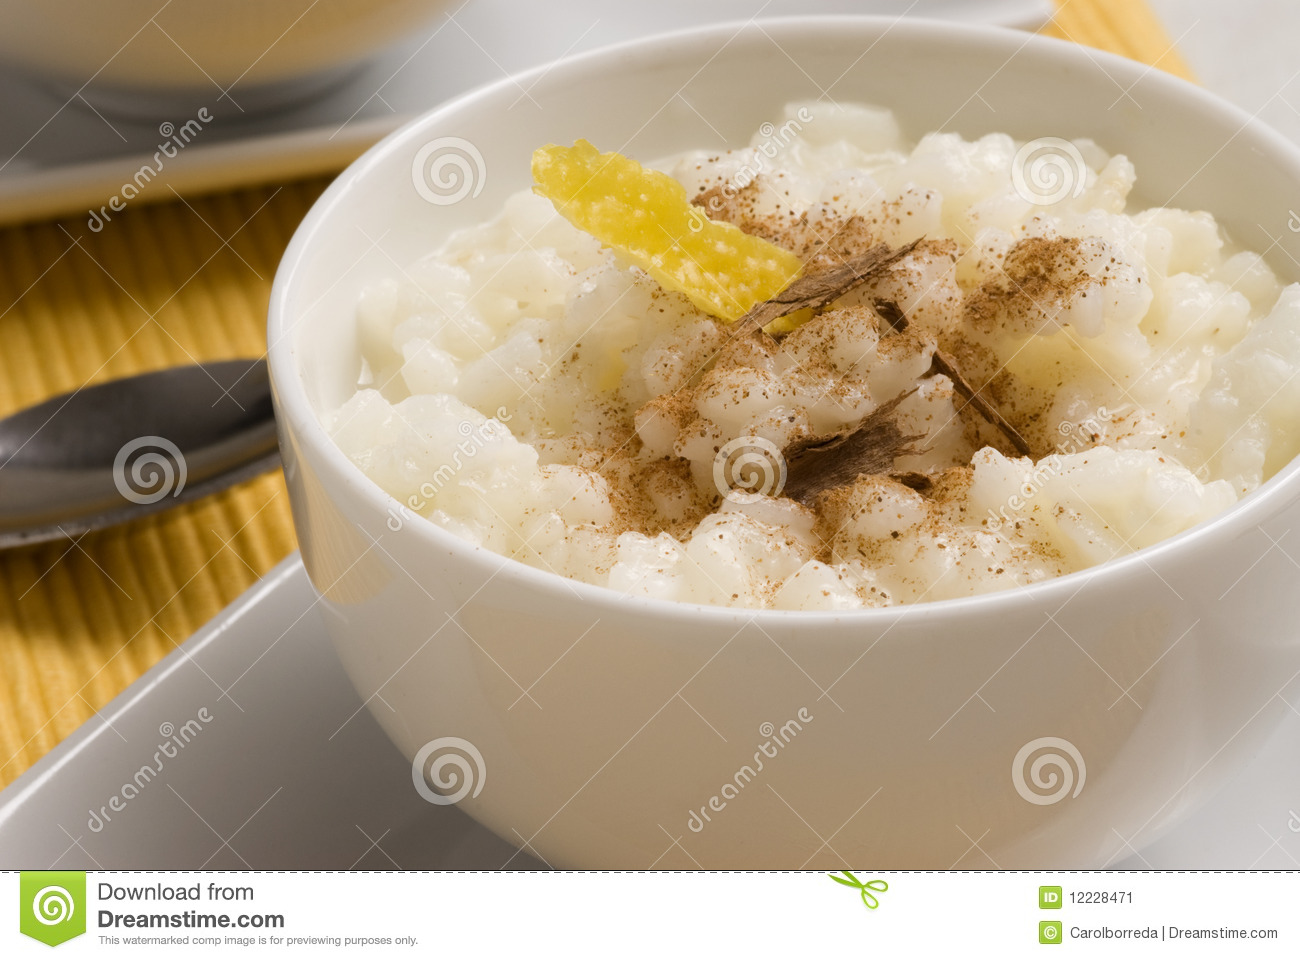 ... bowl with lemon and grated cinnamon. Selective focus. Arroz con leche